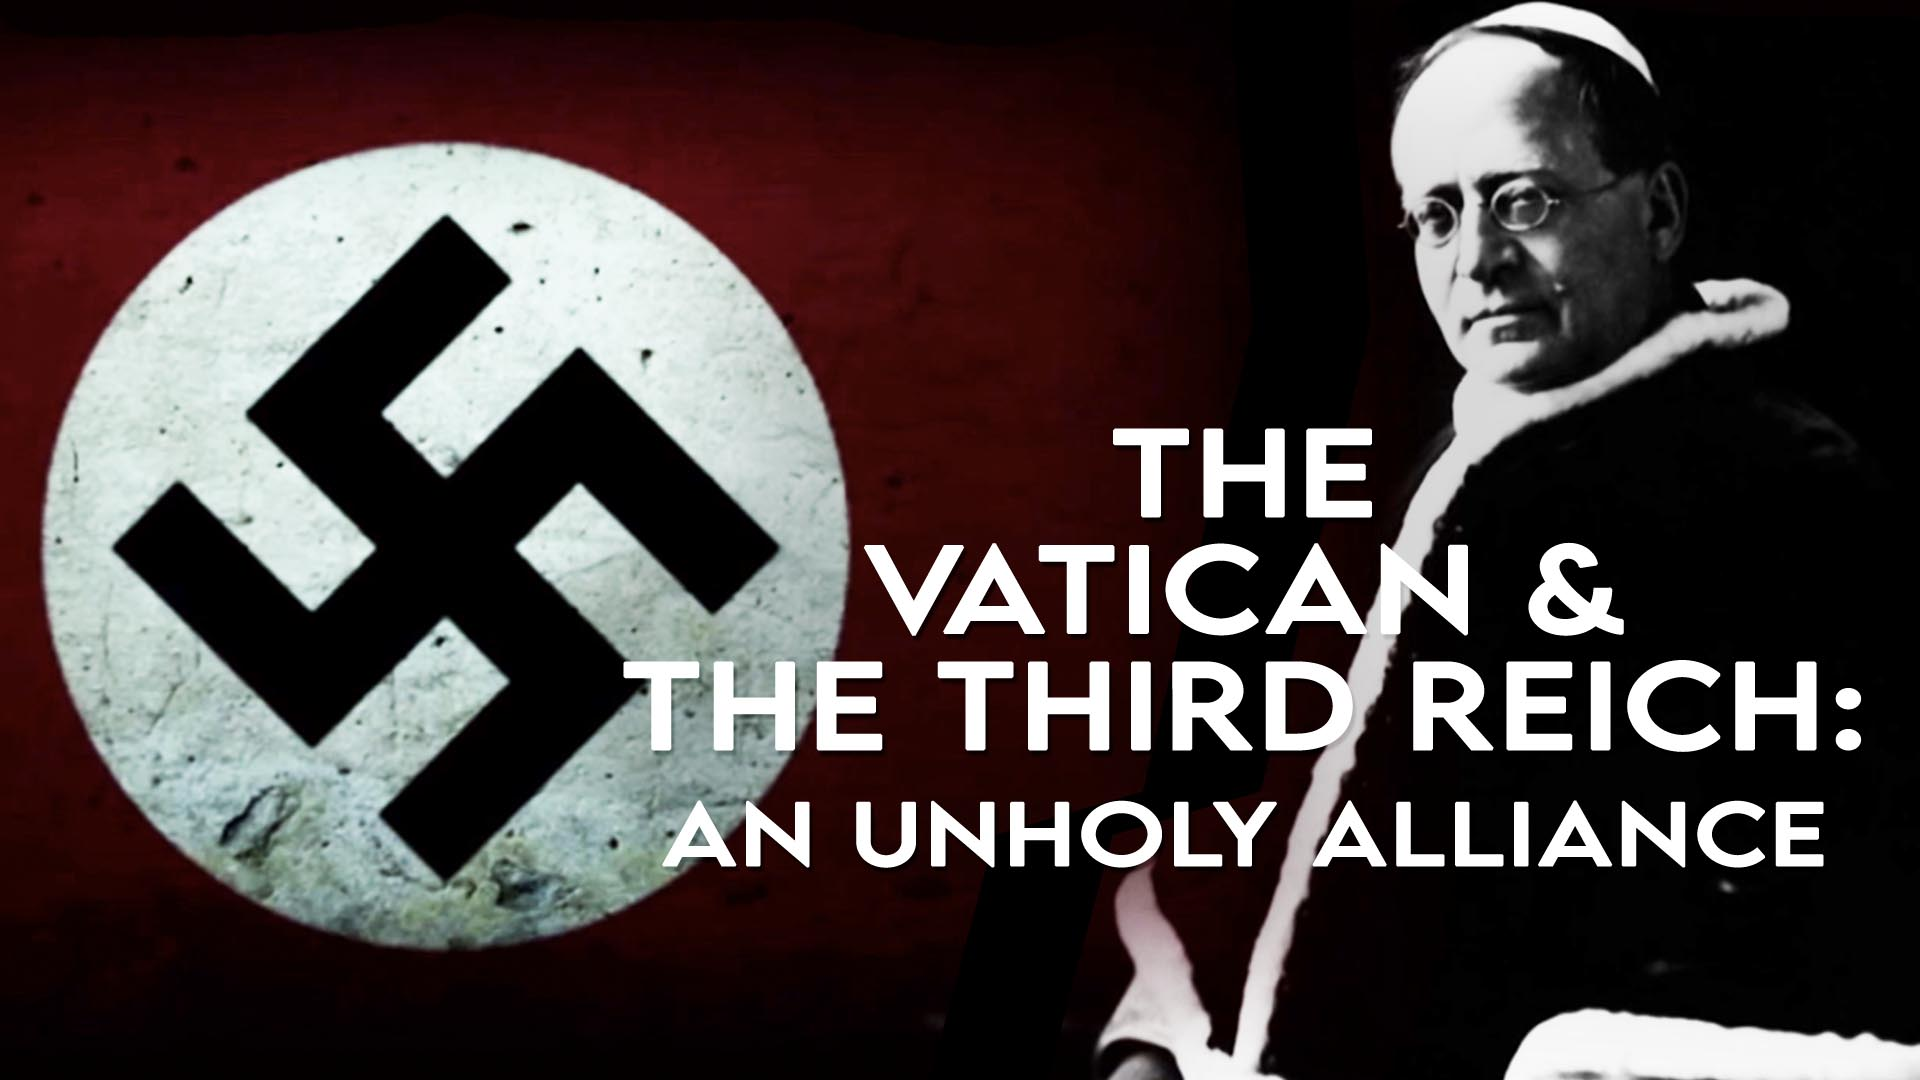 The Vatican and the Third Reich: An Unholy Alliance